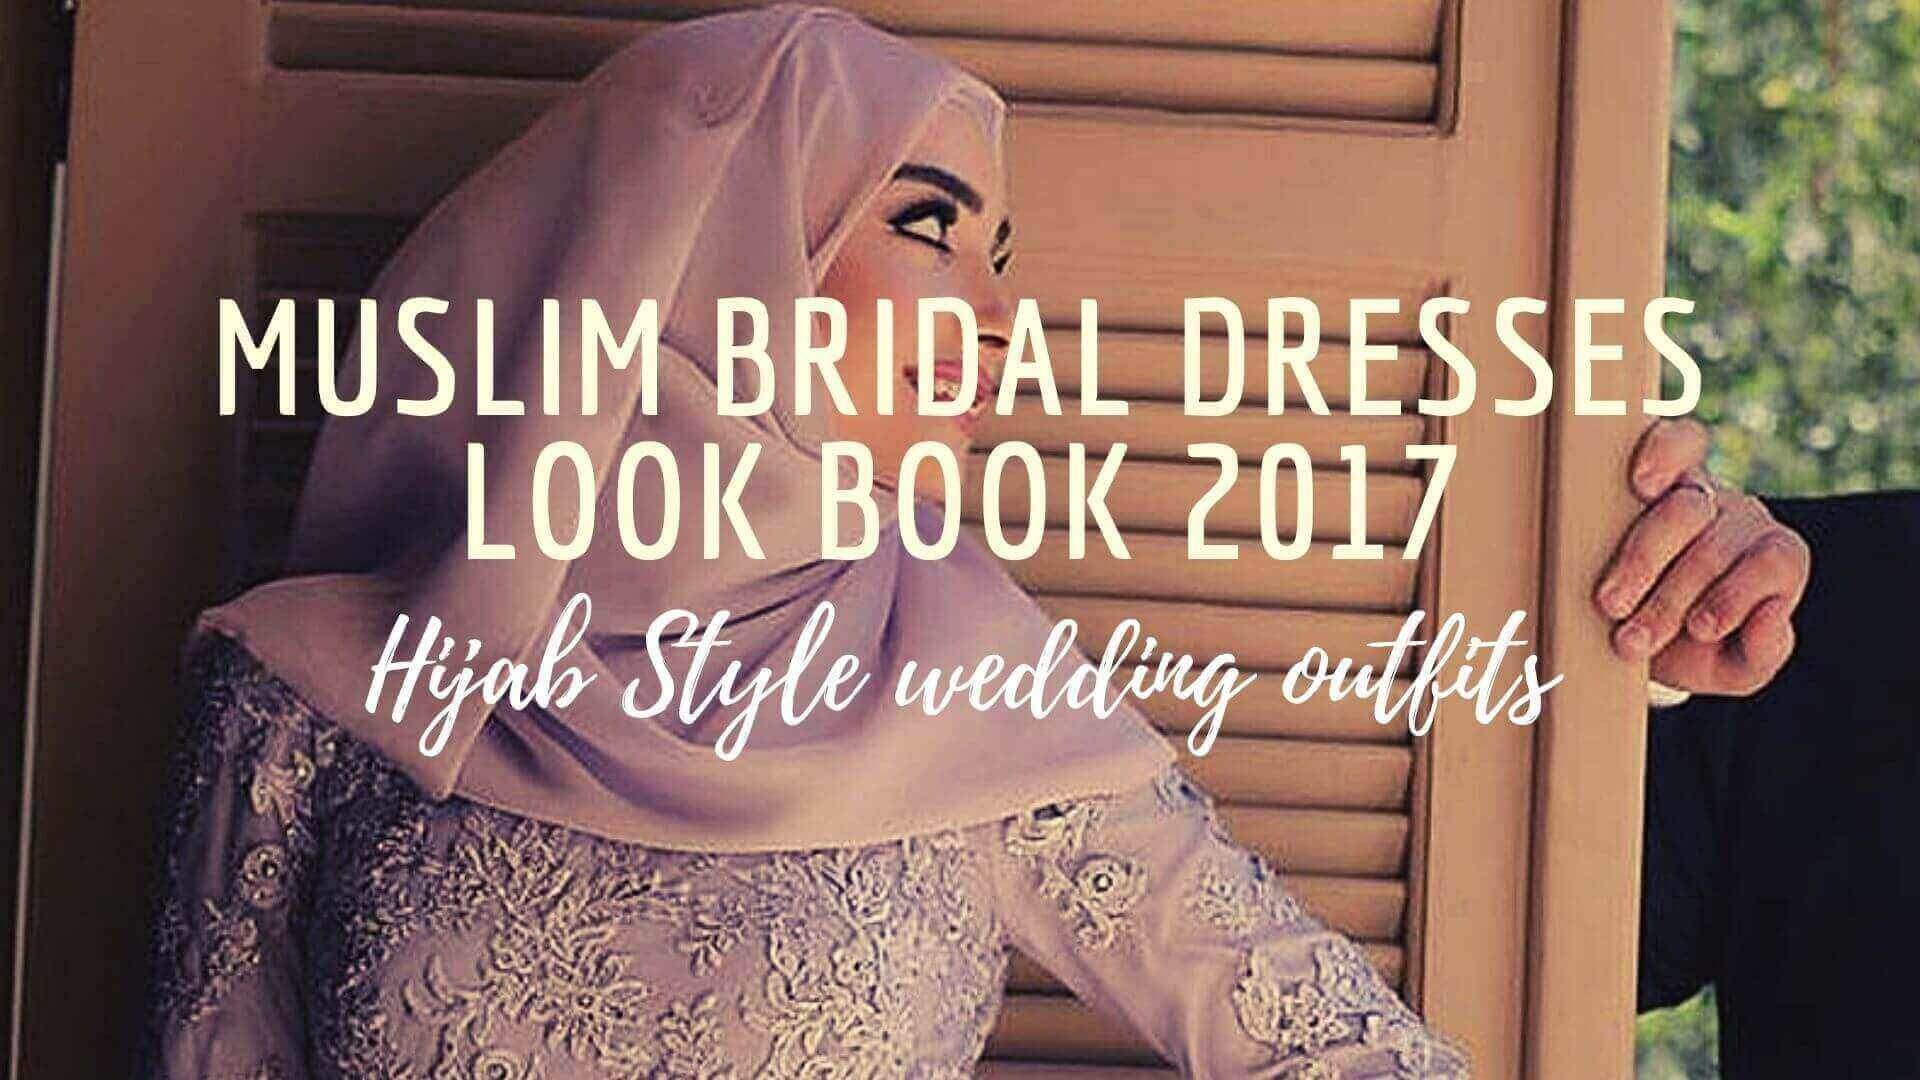 Muslim Bridal Dresses Look Book 2017 |Hijab Style wedding outfits